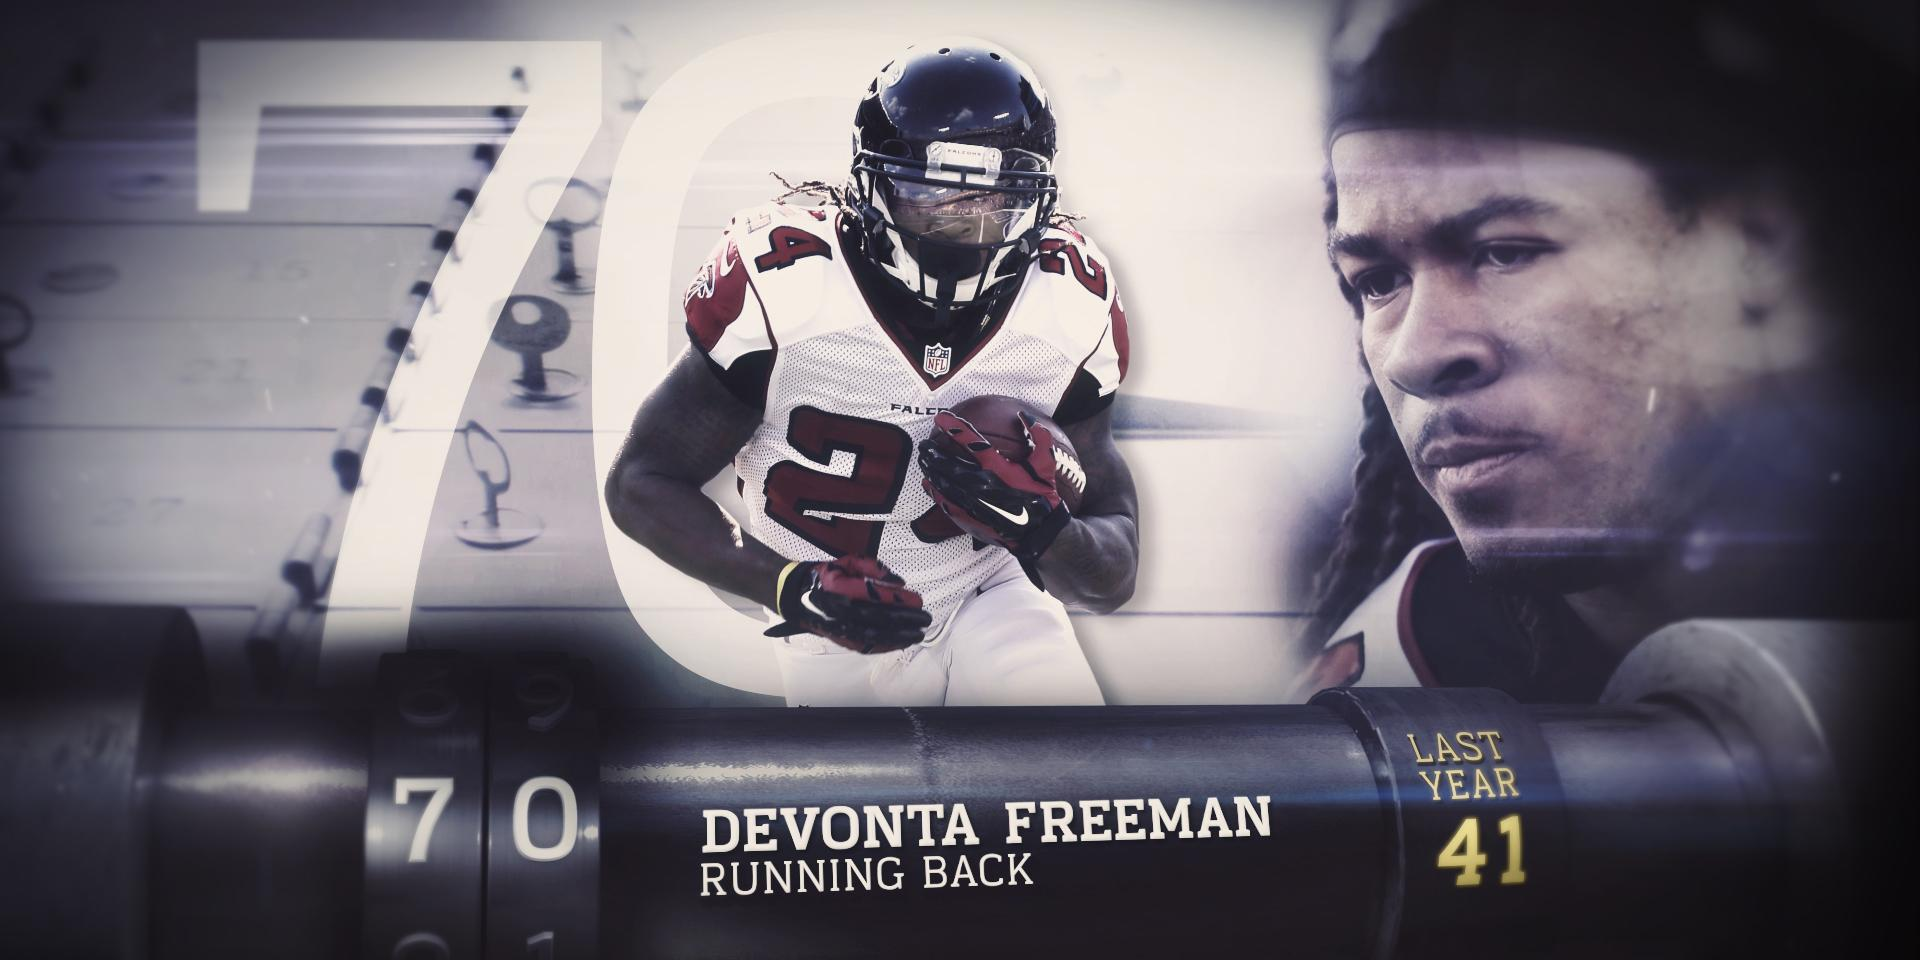 #NFLTop100 Players of 2018 (70-61)  70. @devontafreeman  69. @fcoxx_91  68. @ZERTZ_86 67-61. https://t.co/6DMRC5Ynnb https://t.co/QFVu6wK6sd